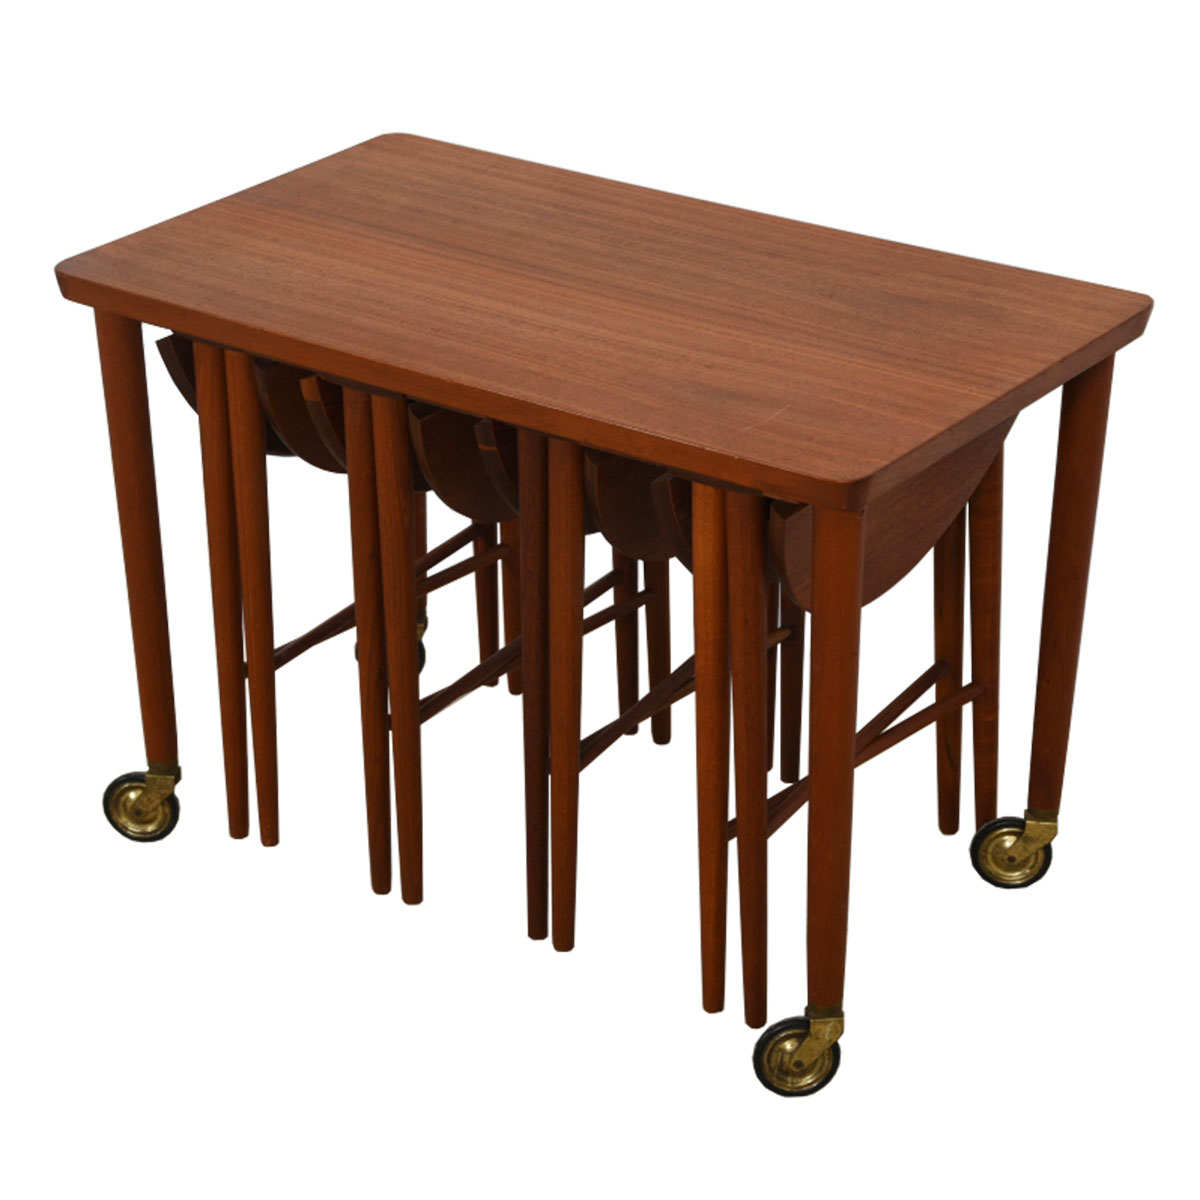 modern mobler drop leaf accent table danish teak rolling cart nesting tables white trunk coffee narrow side for bedroom piece set nautical desk rustic living room beach themed